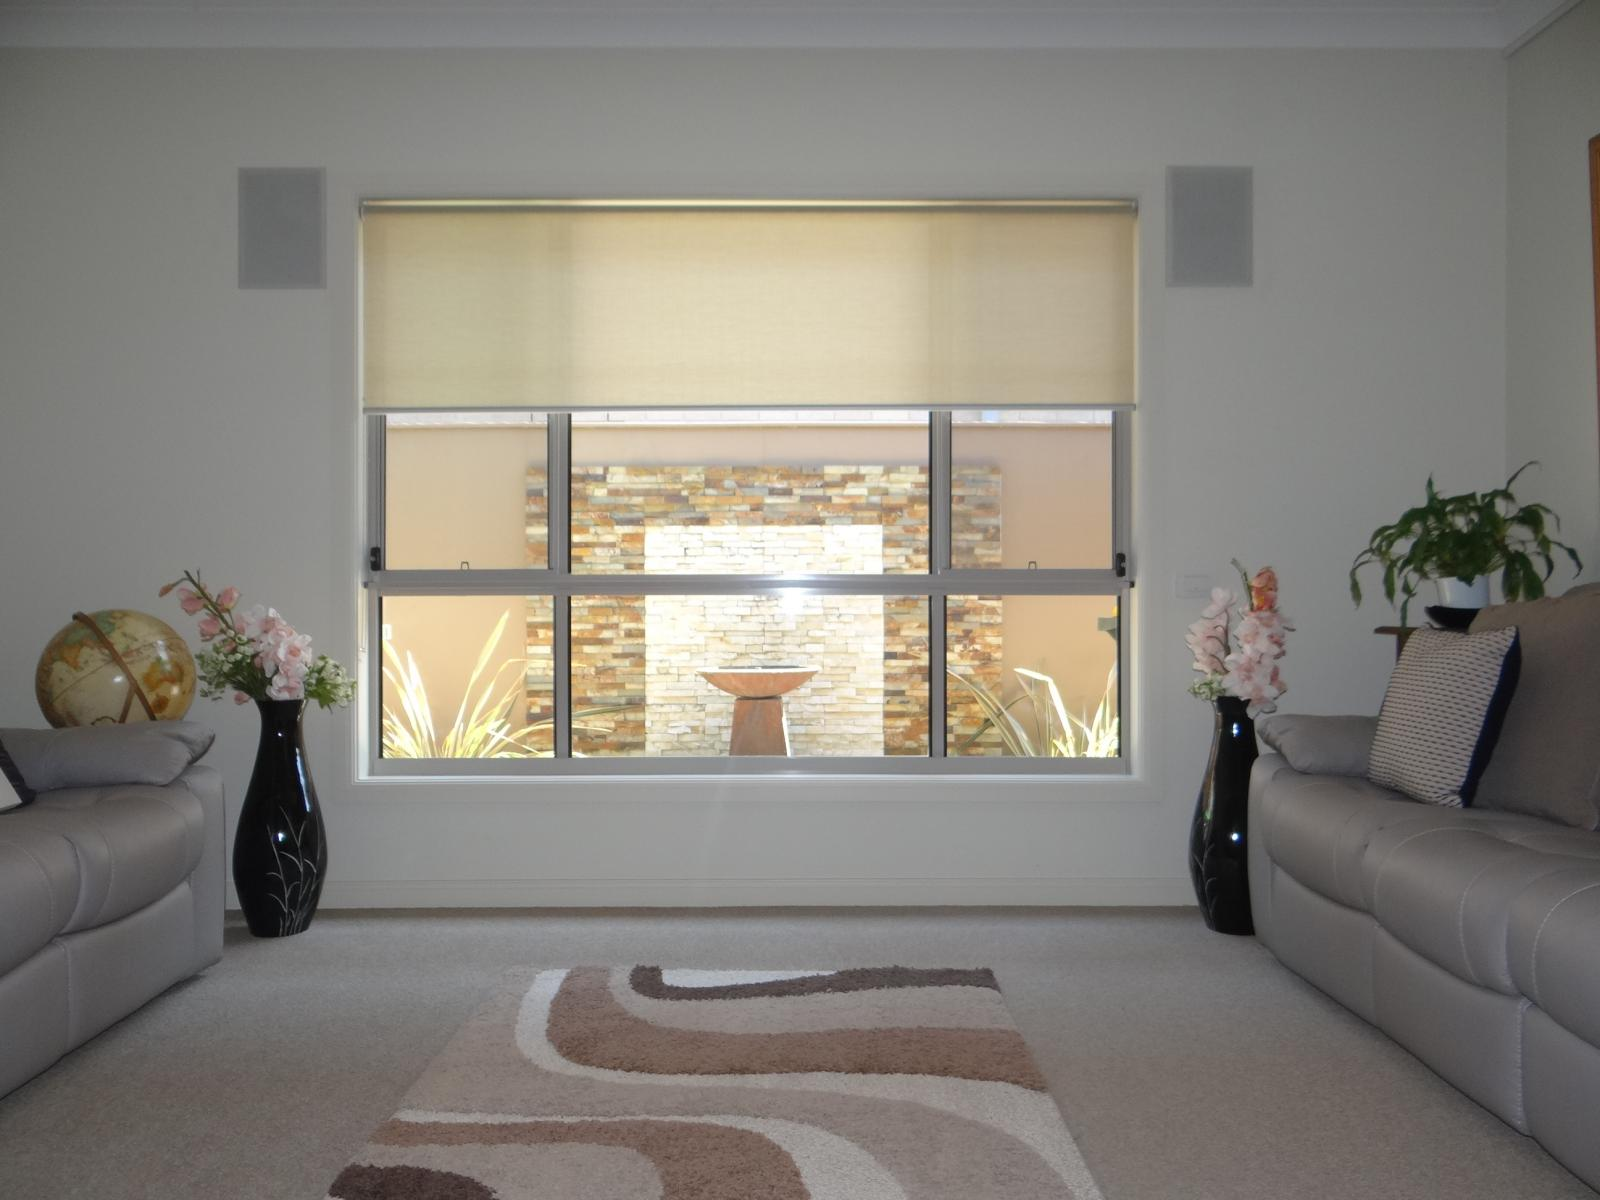 Being able to look out through windows from a seat is a good idea Picture credit: Livable Housing Australia